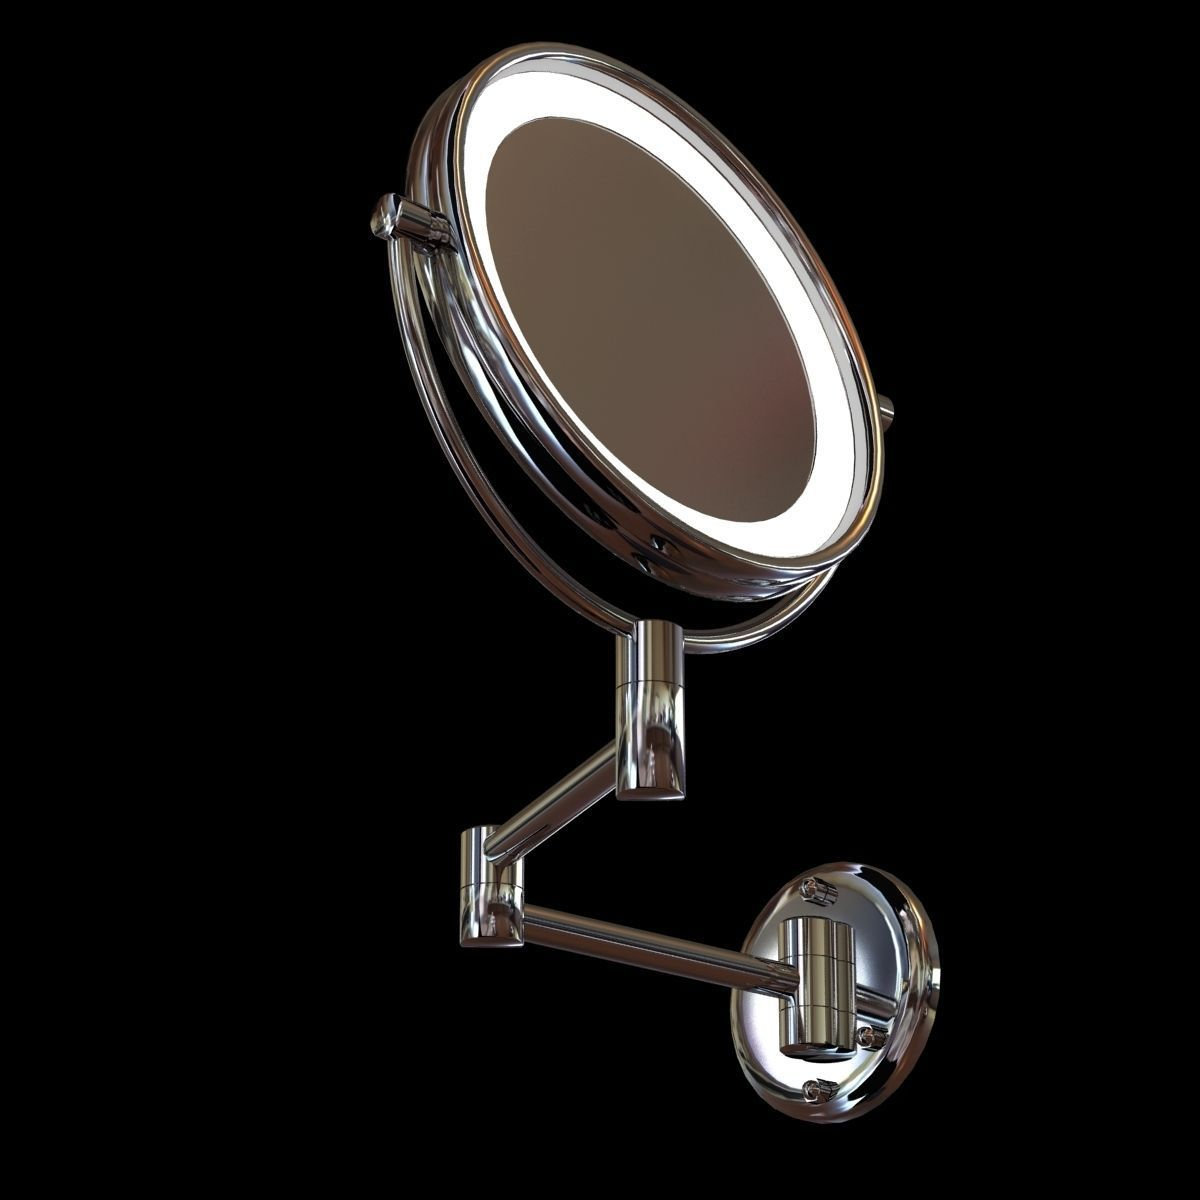 jerdon led lighted wall mounted mirror 3d model. Black Bedroom Furniture Sets. Home Design Ideas